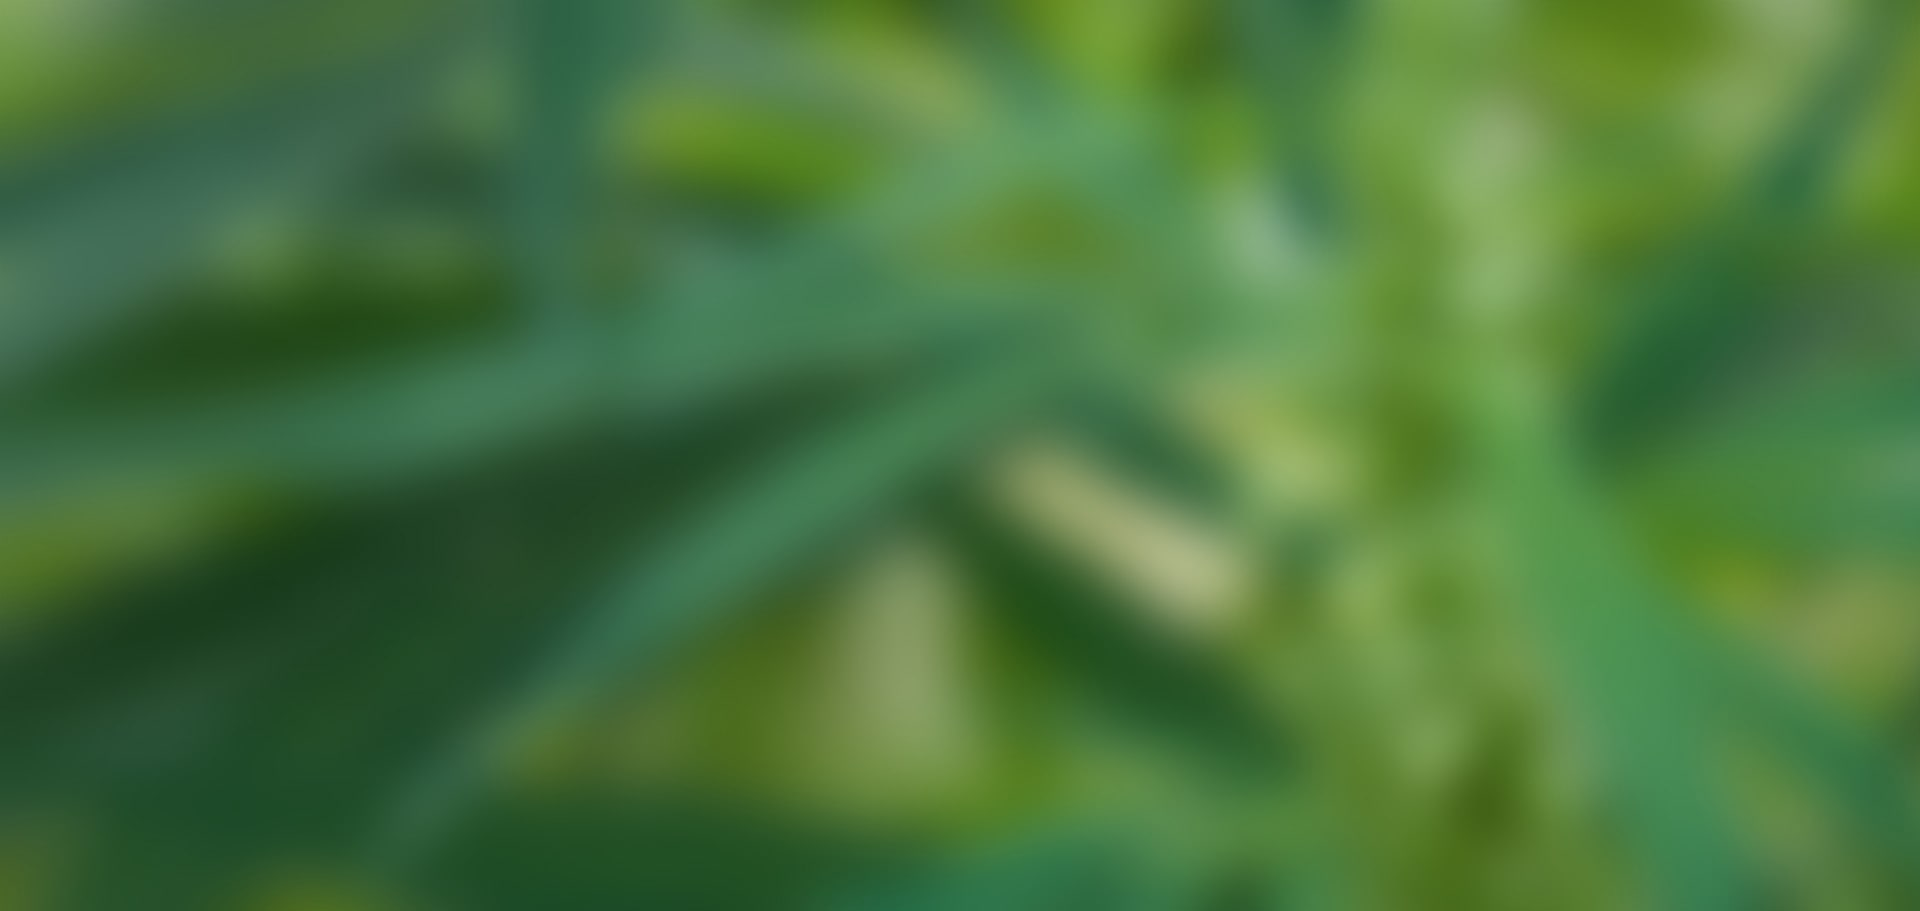 blurred cannabis background2